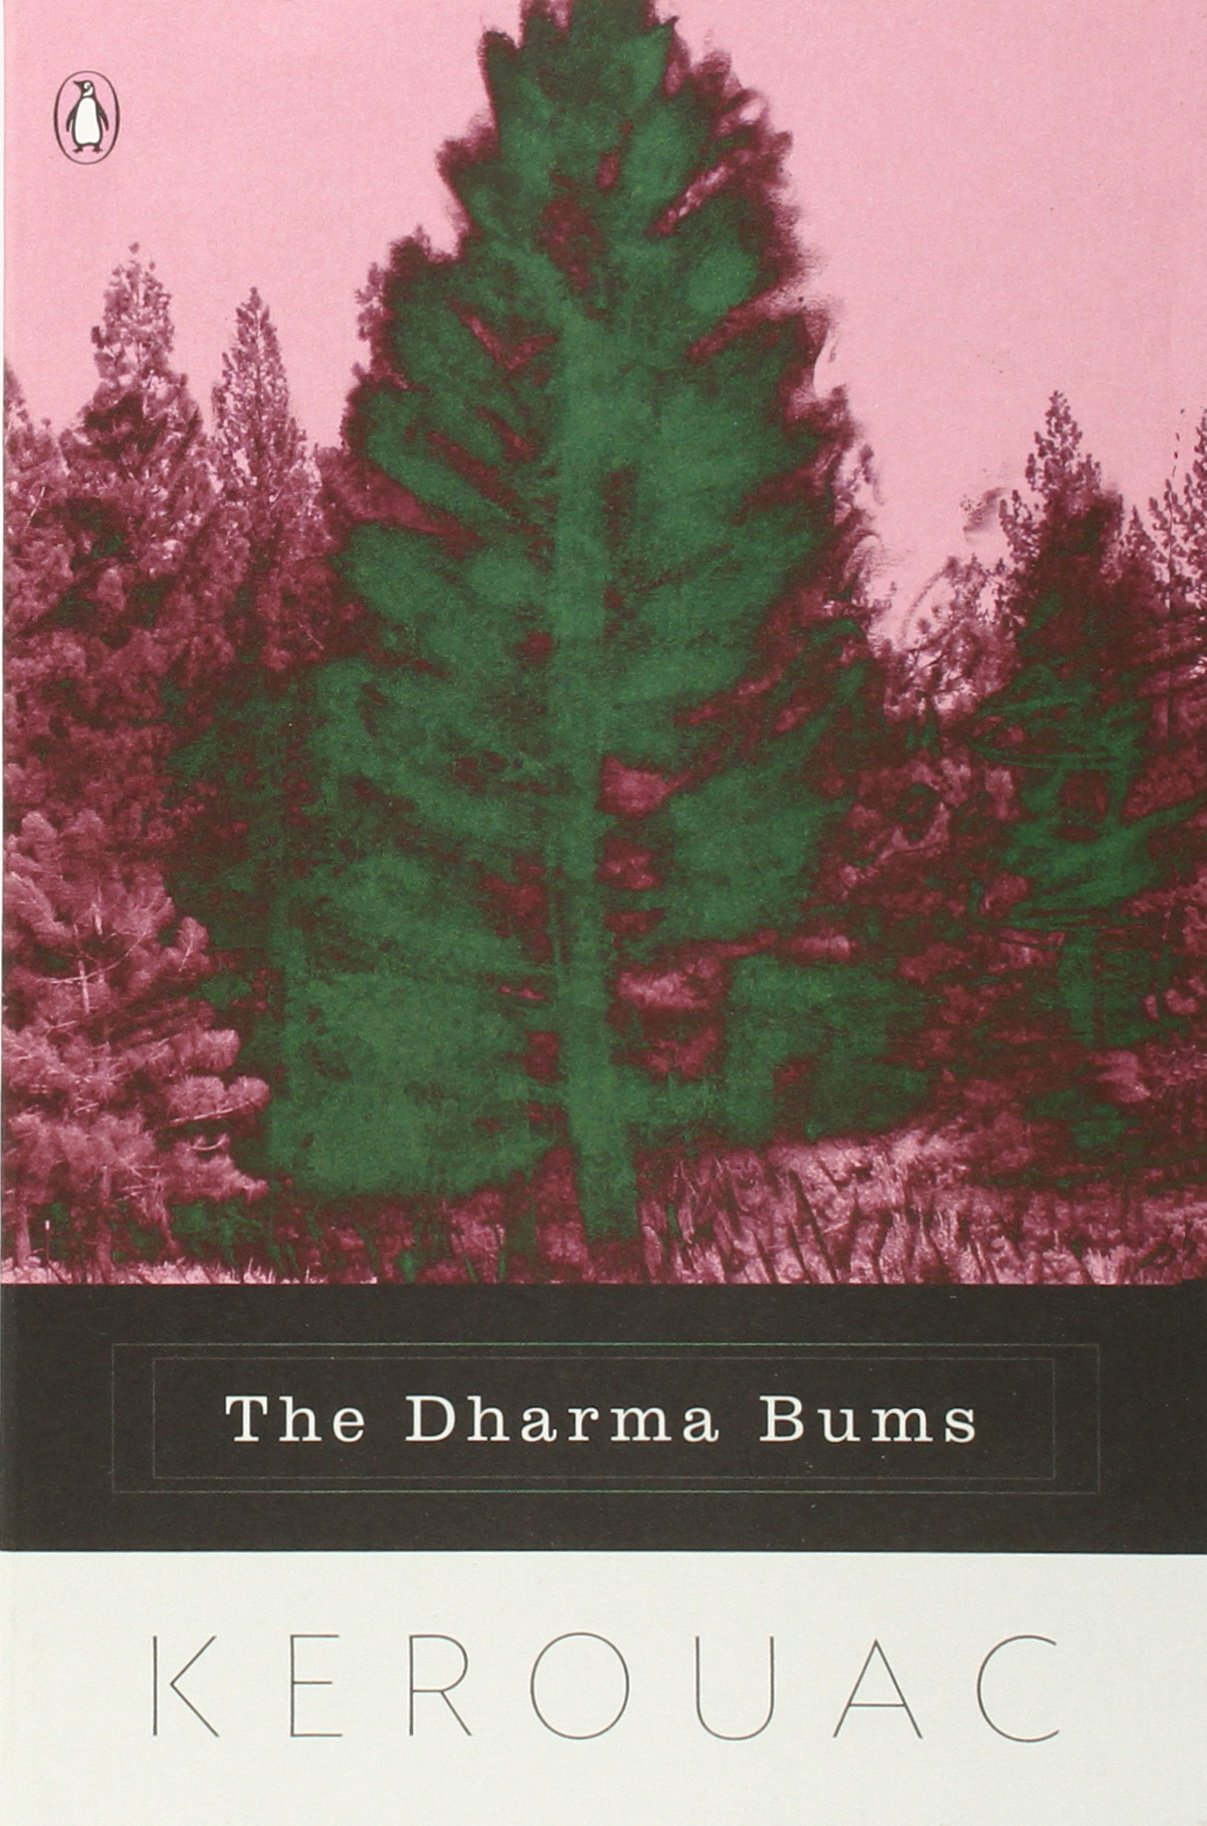 The Dharma Bums ISBN-13 9780140042528